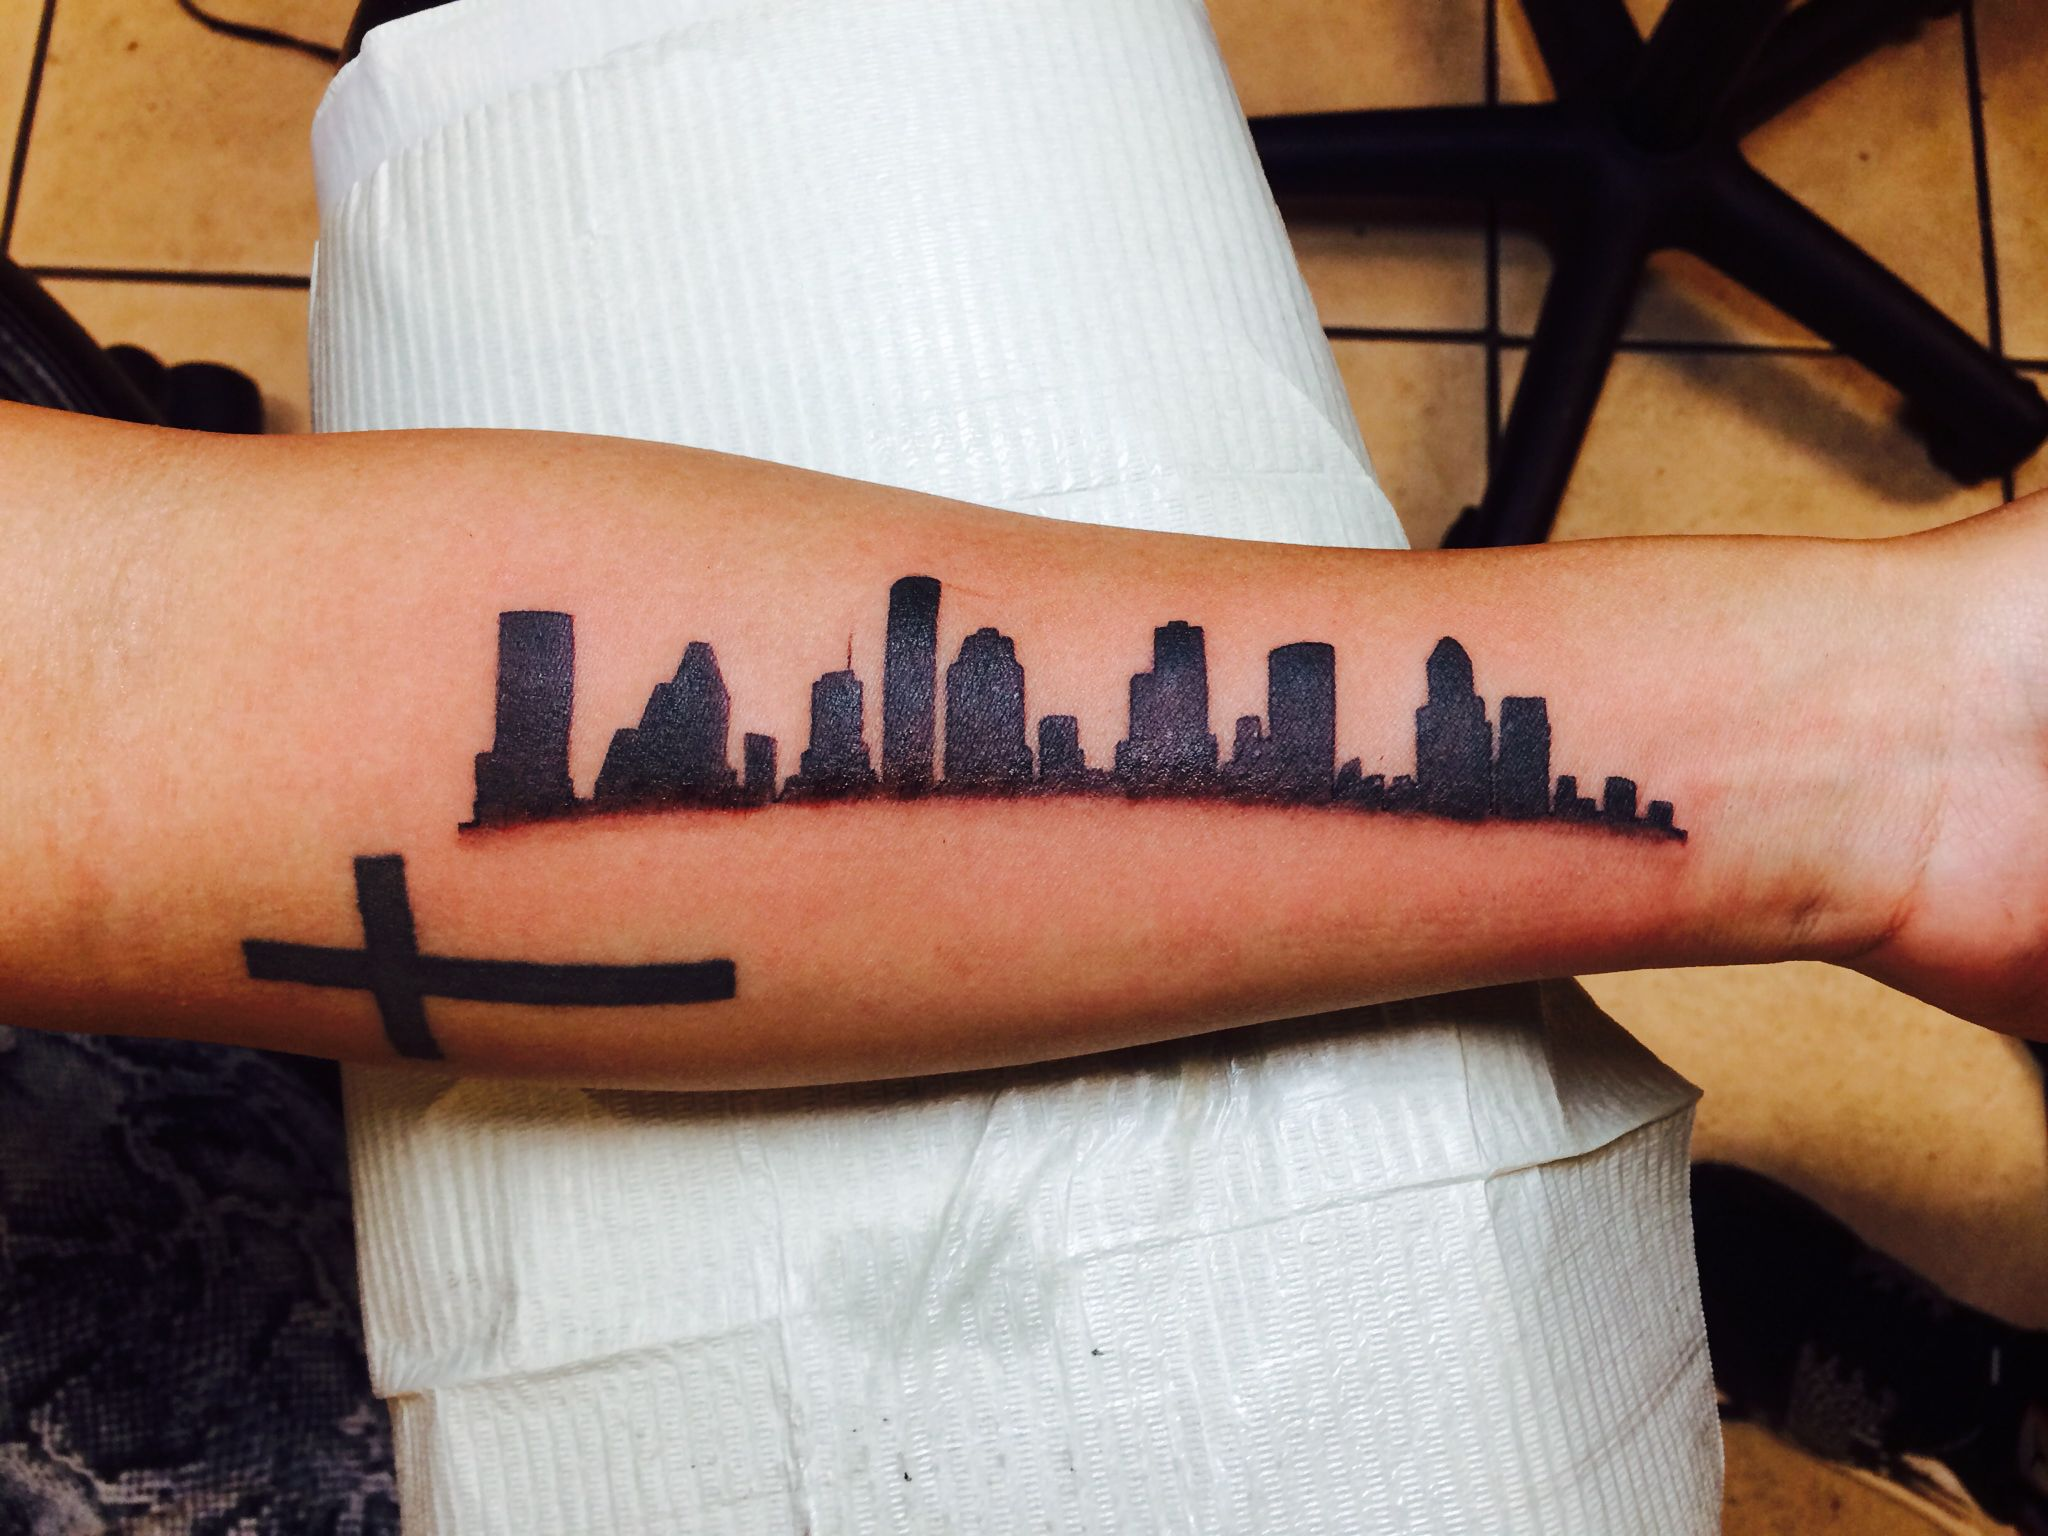 30 Los Angeles Skyline Tattoo Designs For Men – Southern California Ink Ideas 30 Los Angeles Skyline Tattoo Designs For Men – Southern California Ink Ideas new images